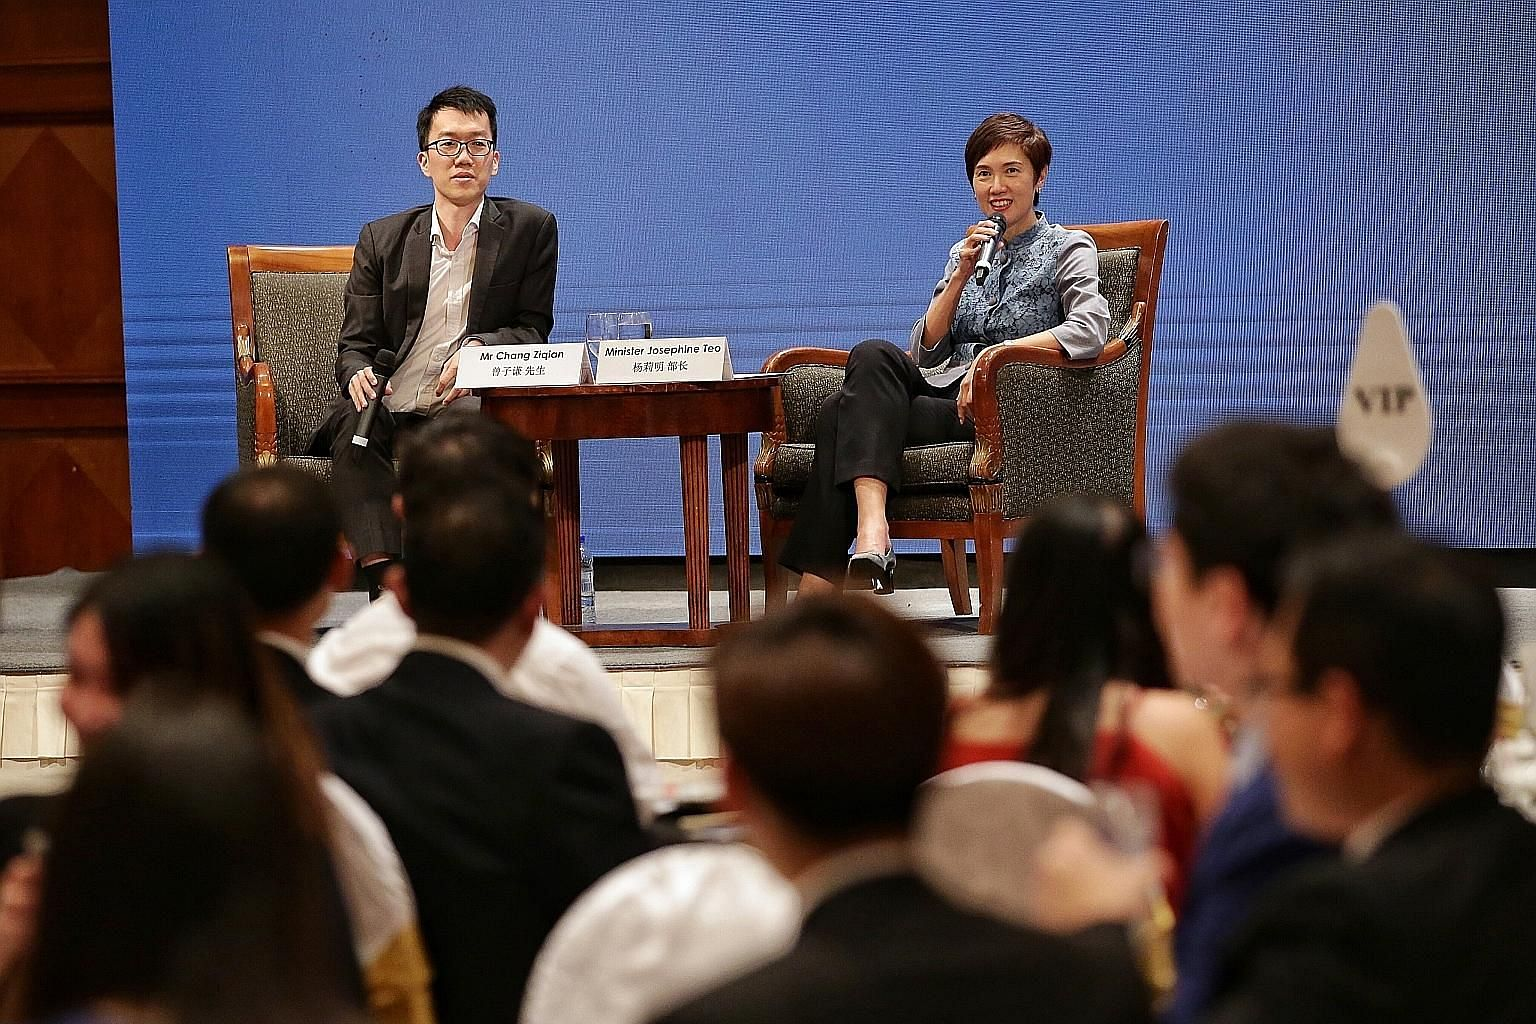 Manpower Minister Josephine Teo, speaking at a dialogue held as part of Business China Youth Chapter's 10th anniversary celebration yesterday, said multiple perspectives have to be considered to really understand how China functions. With her was BCY